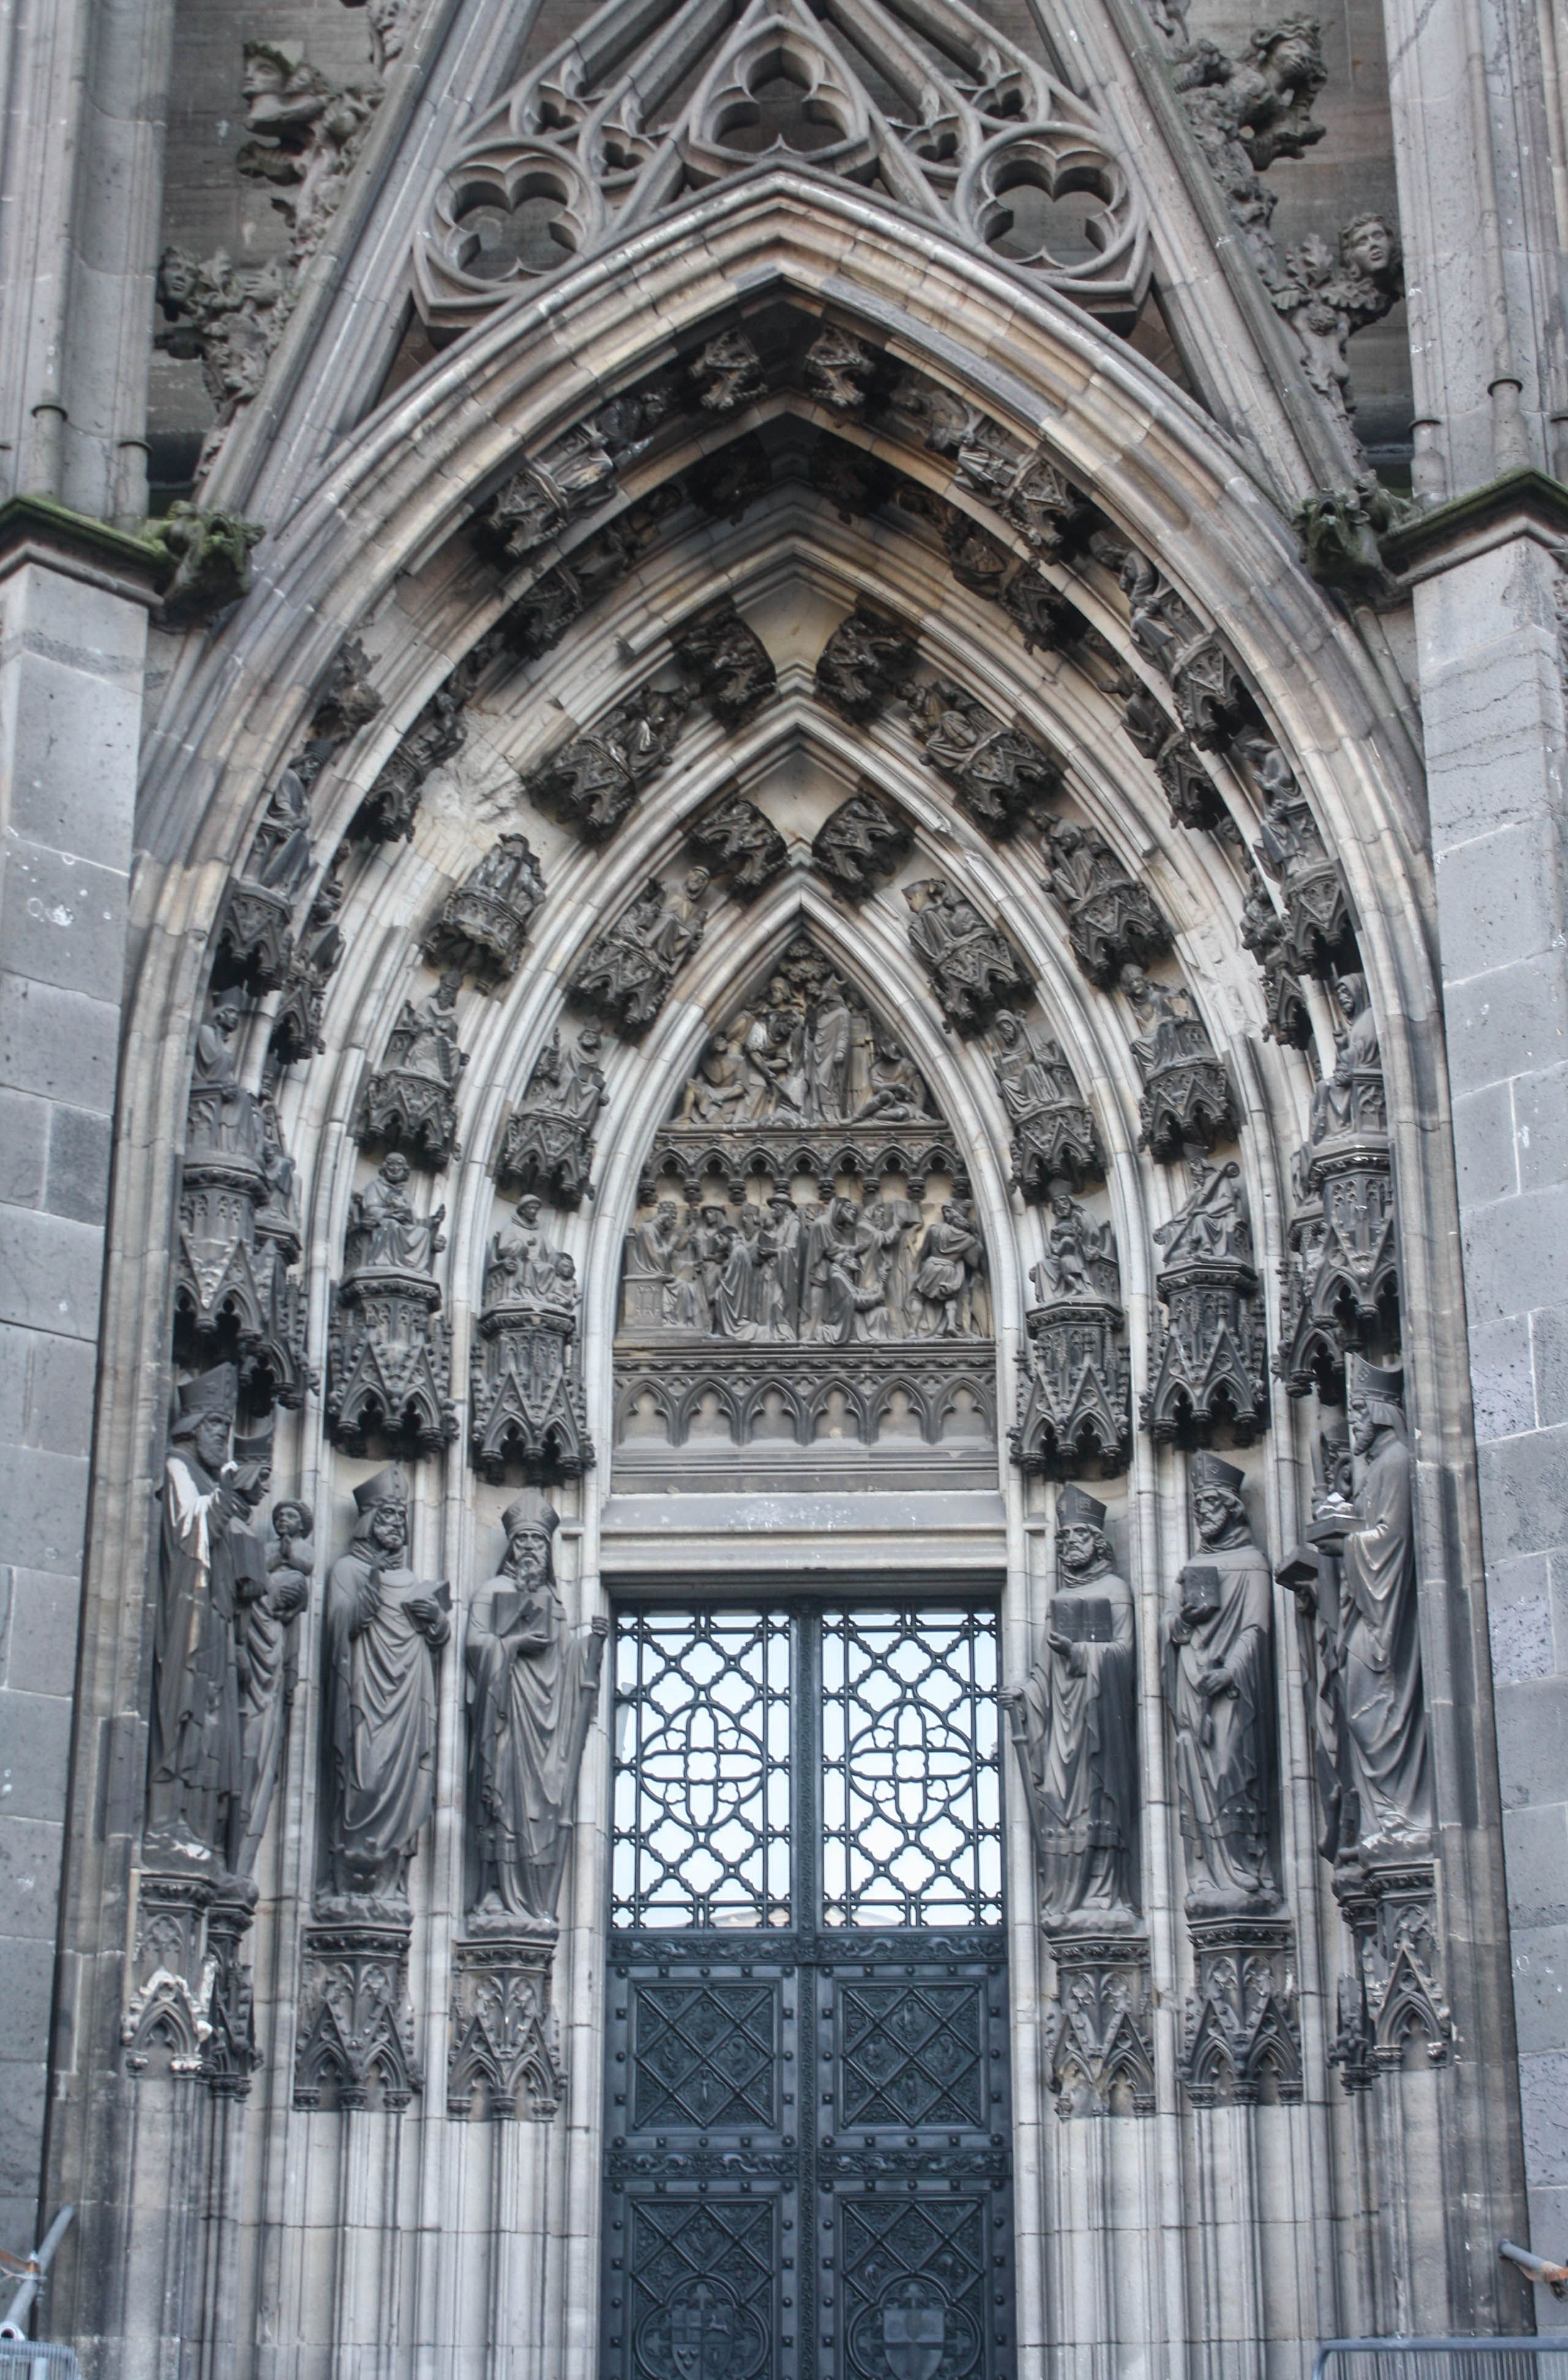 Cologne Cathedral, Cologne, Germany www.stephentravels.com/top5/entryways